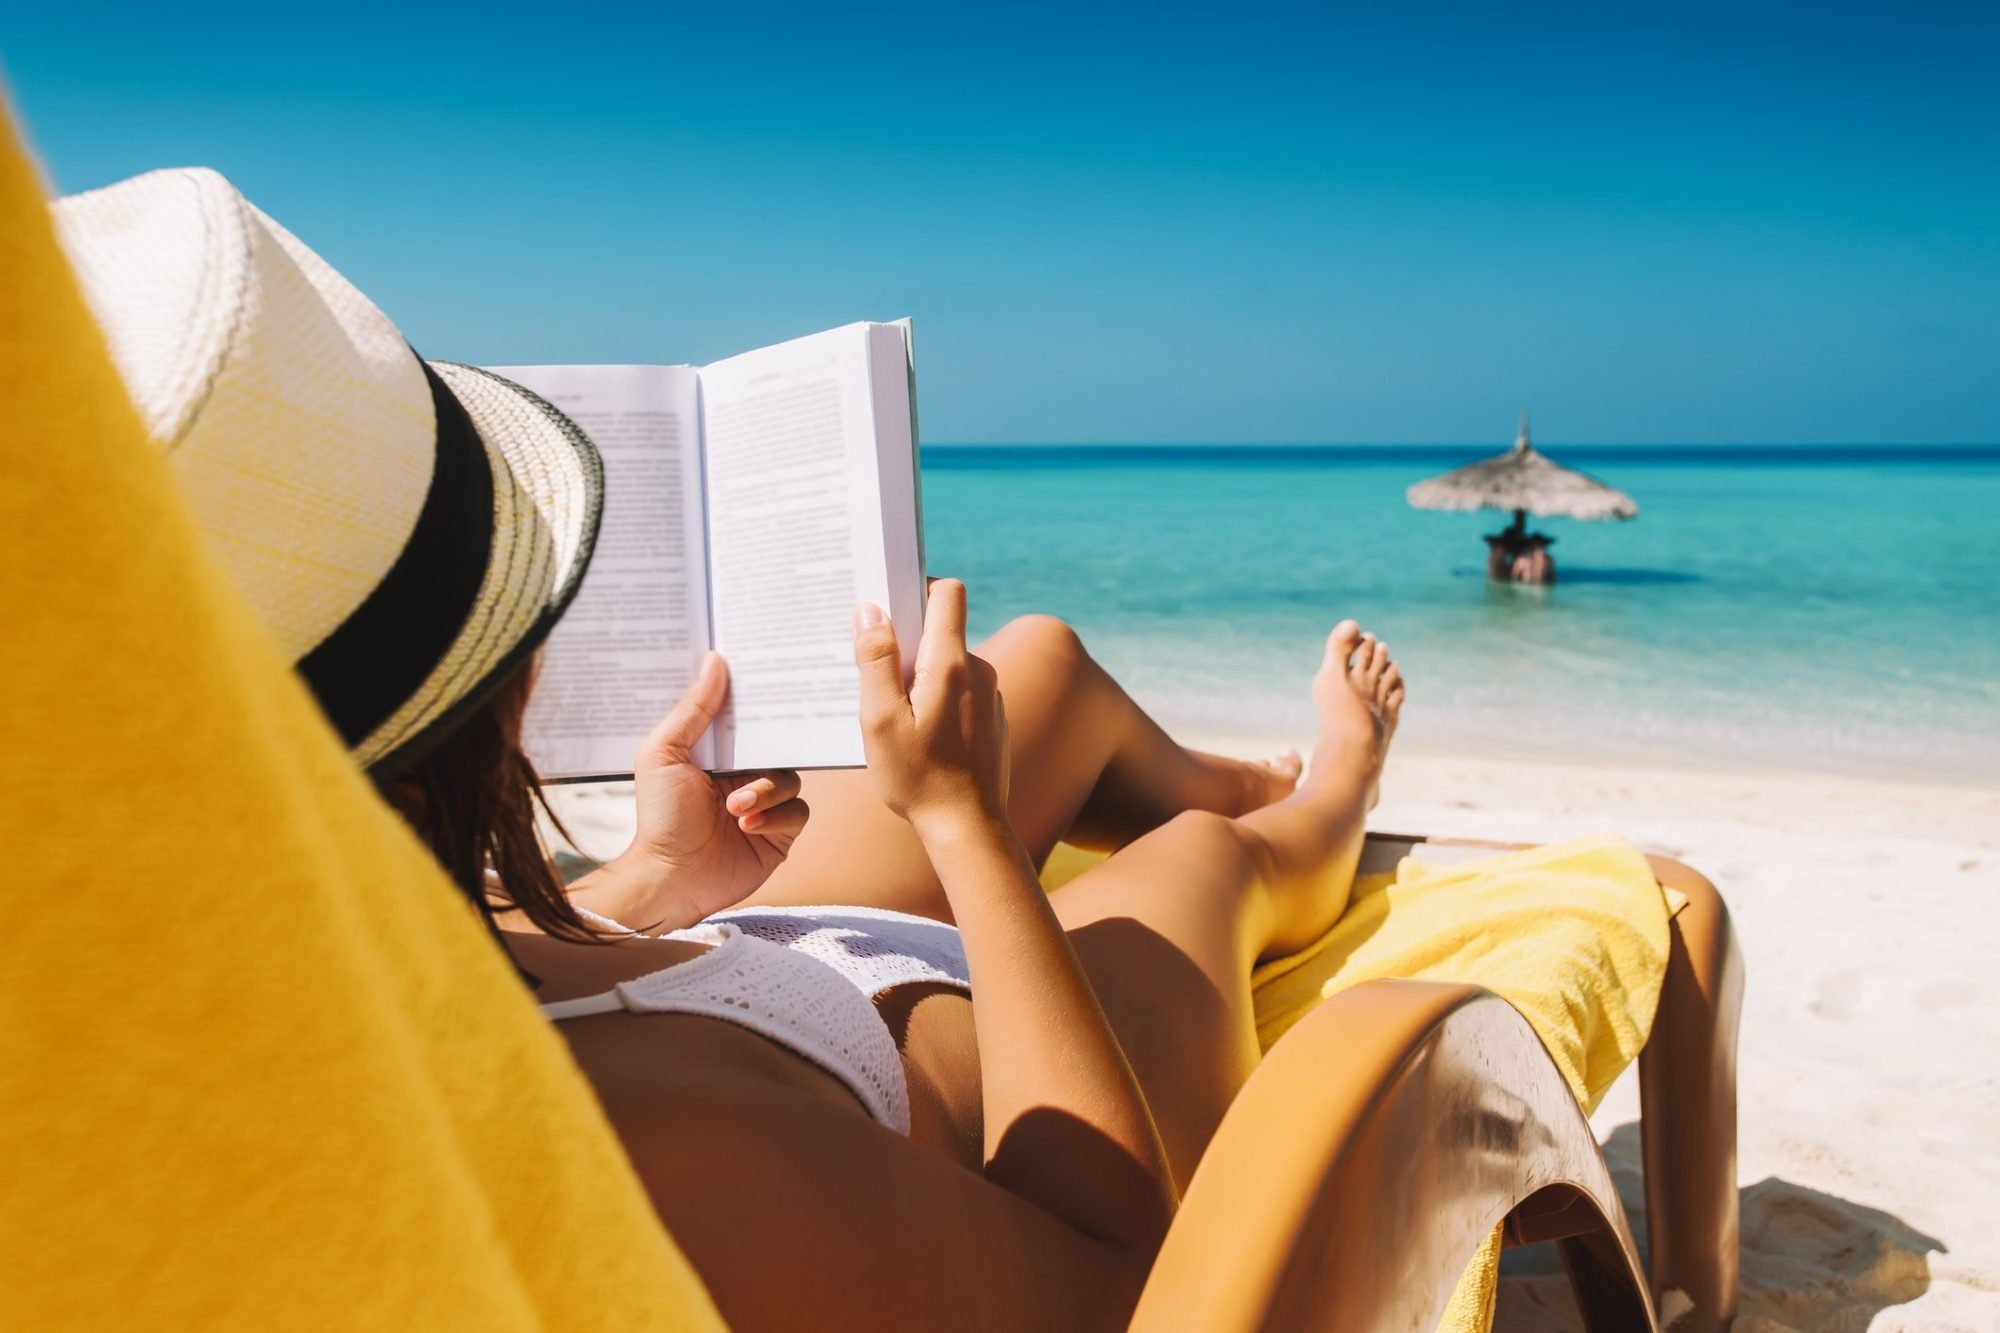 Woman on sunbed reading book under parasol at tropical island